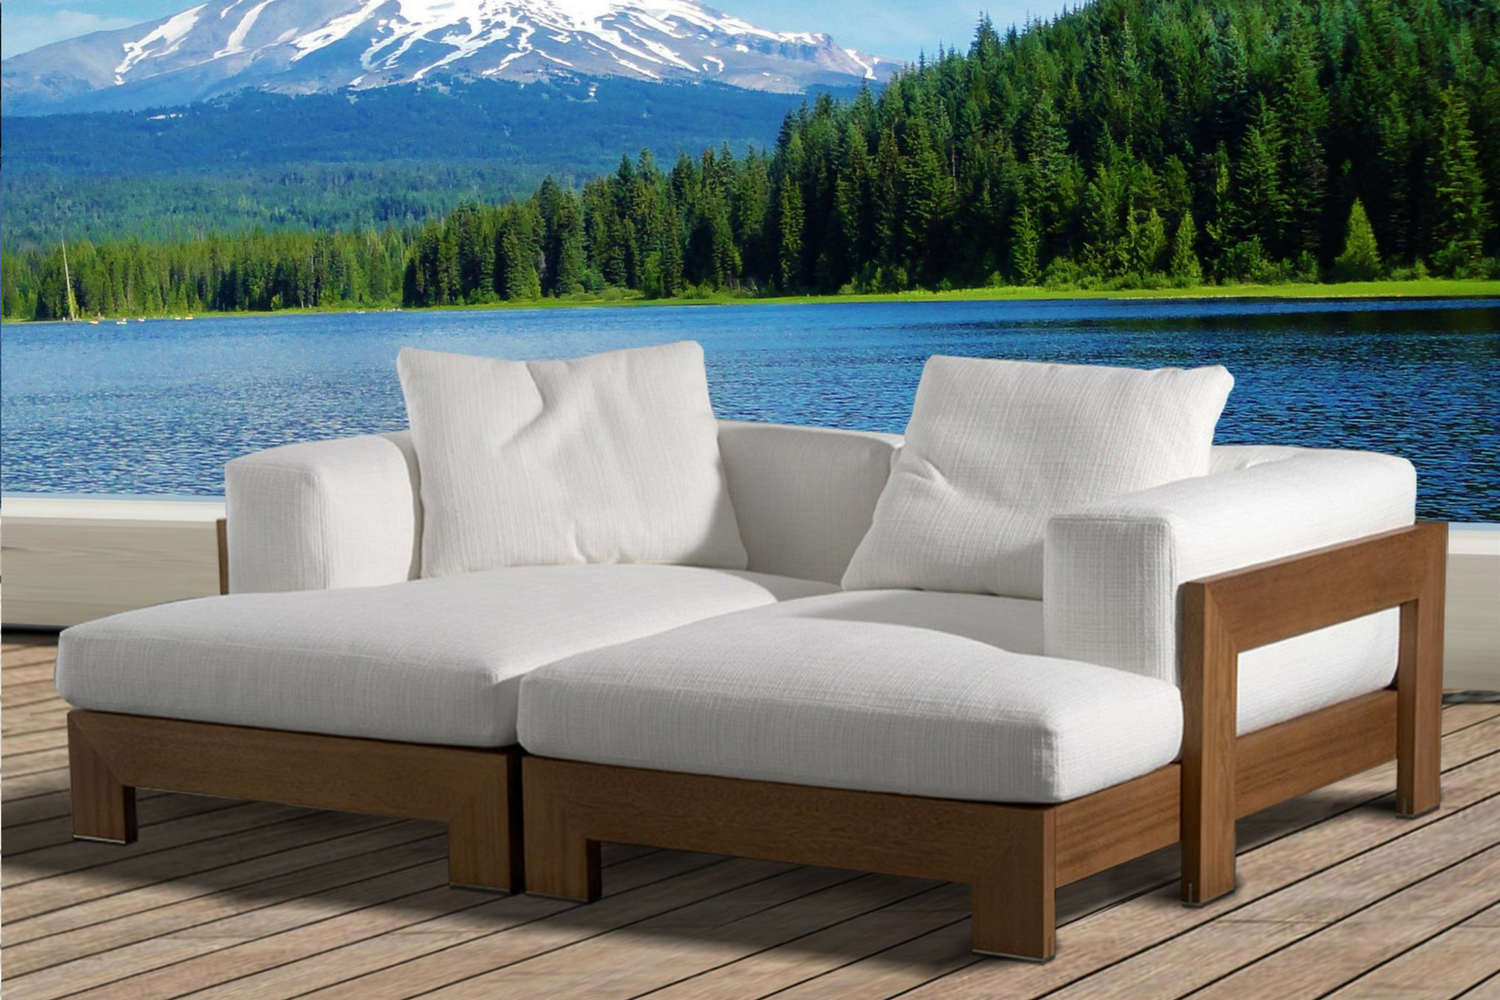 The Naxos Outdoor Daybed Hadley Rose